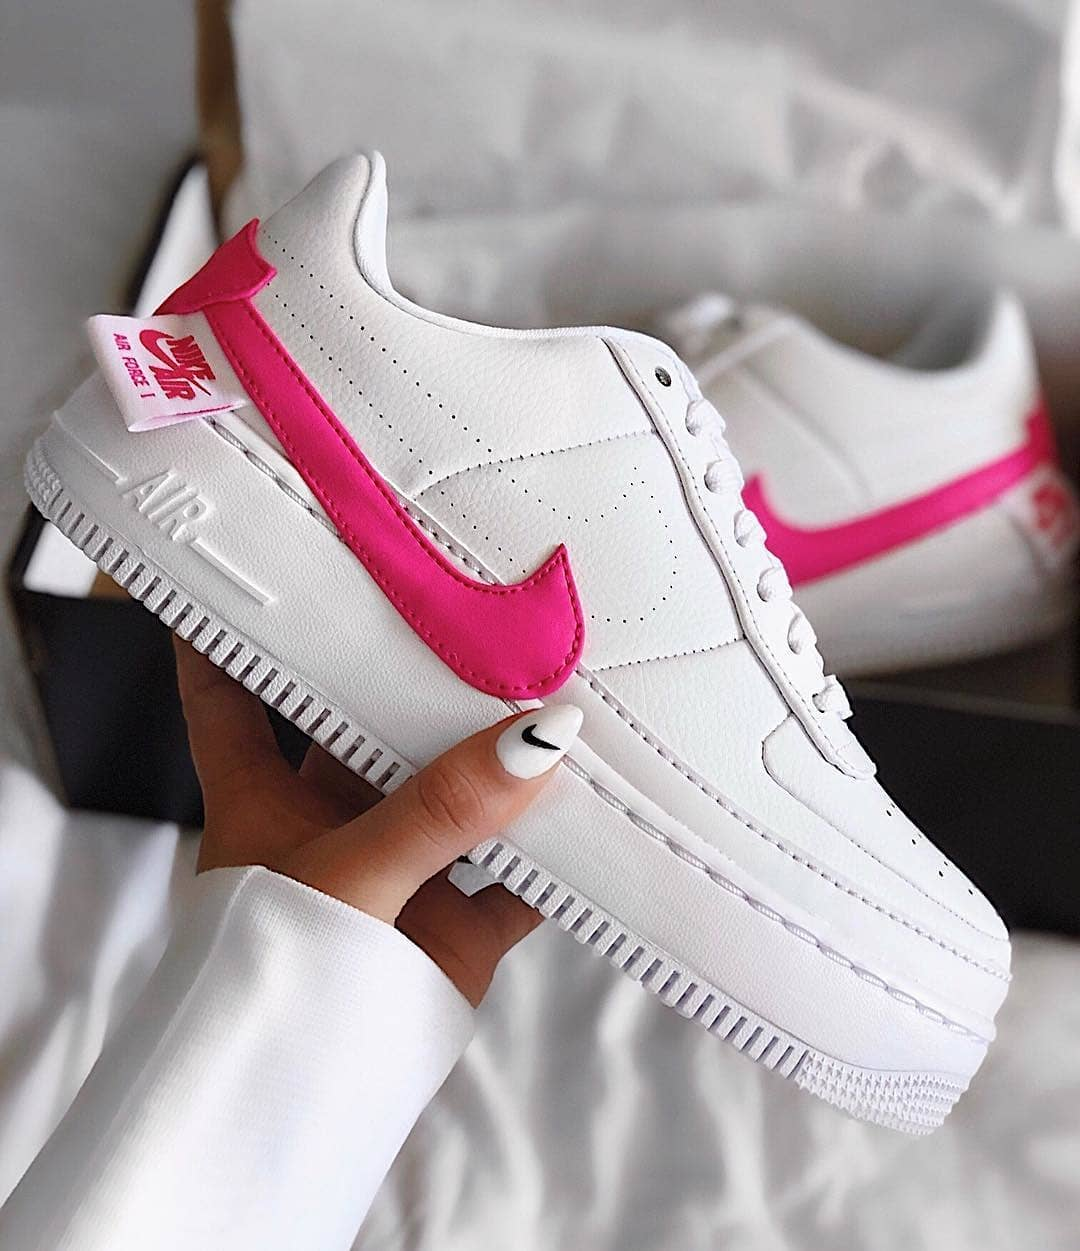 Nike Air Force 1 Jester XX Shoe - Pink